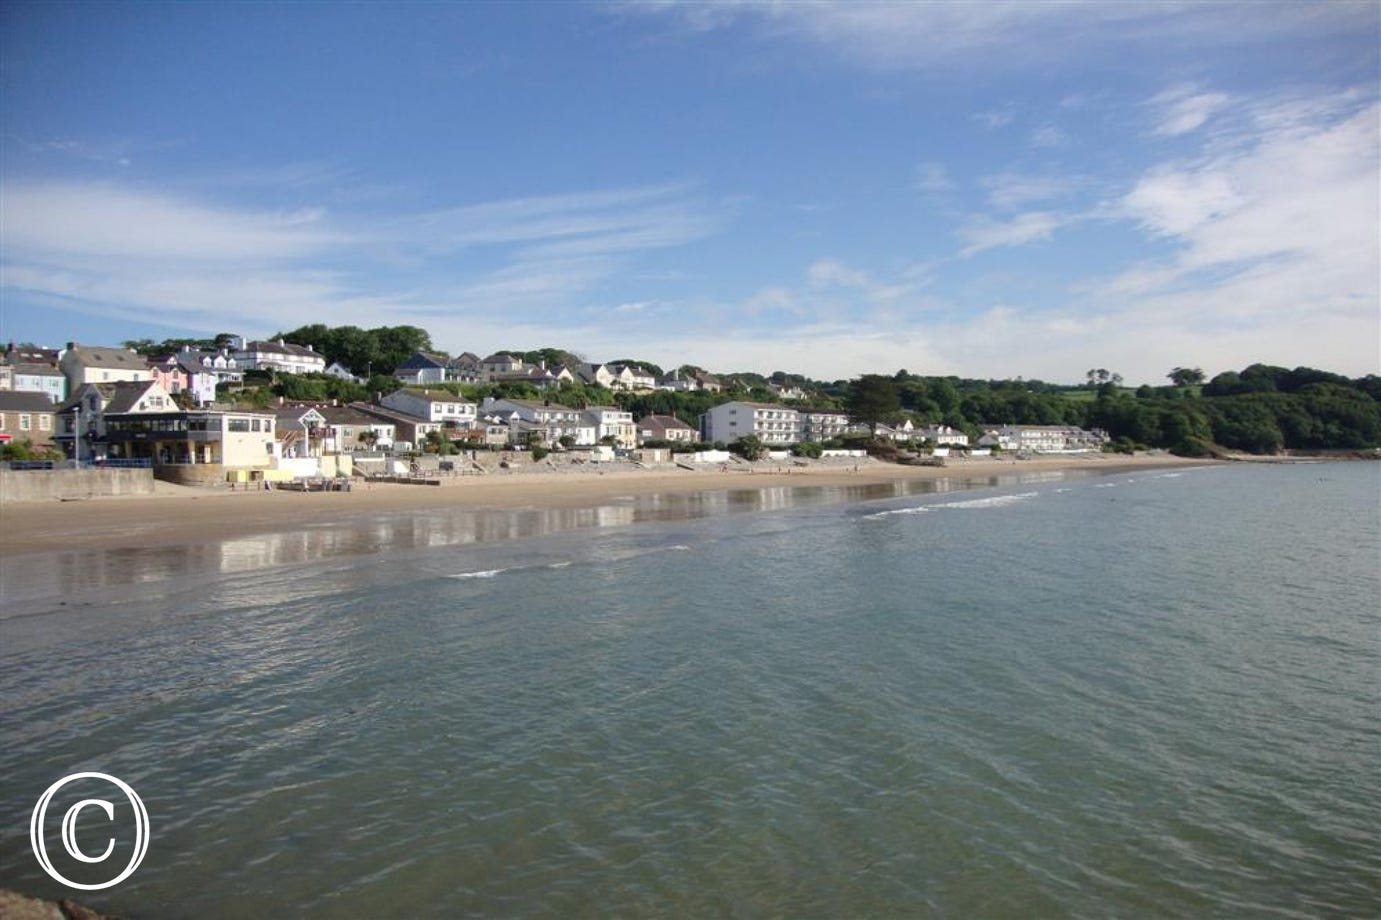 3 miles away is Saundersfoot with shops, restaurants, sandy beaches & harbour